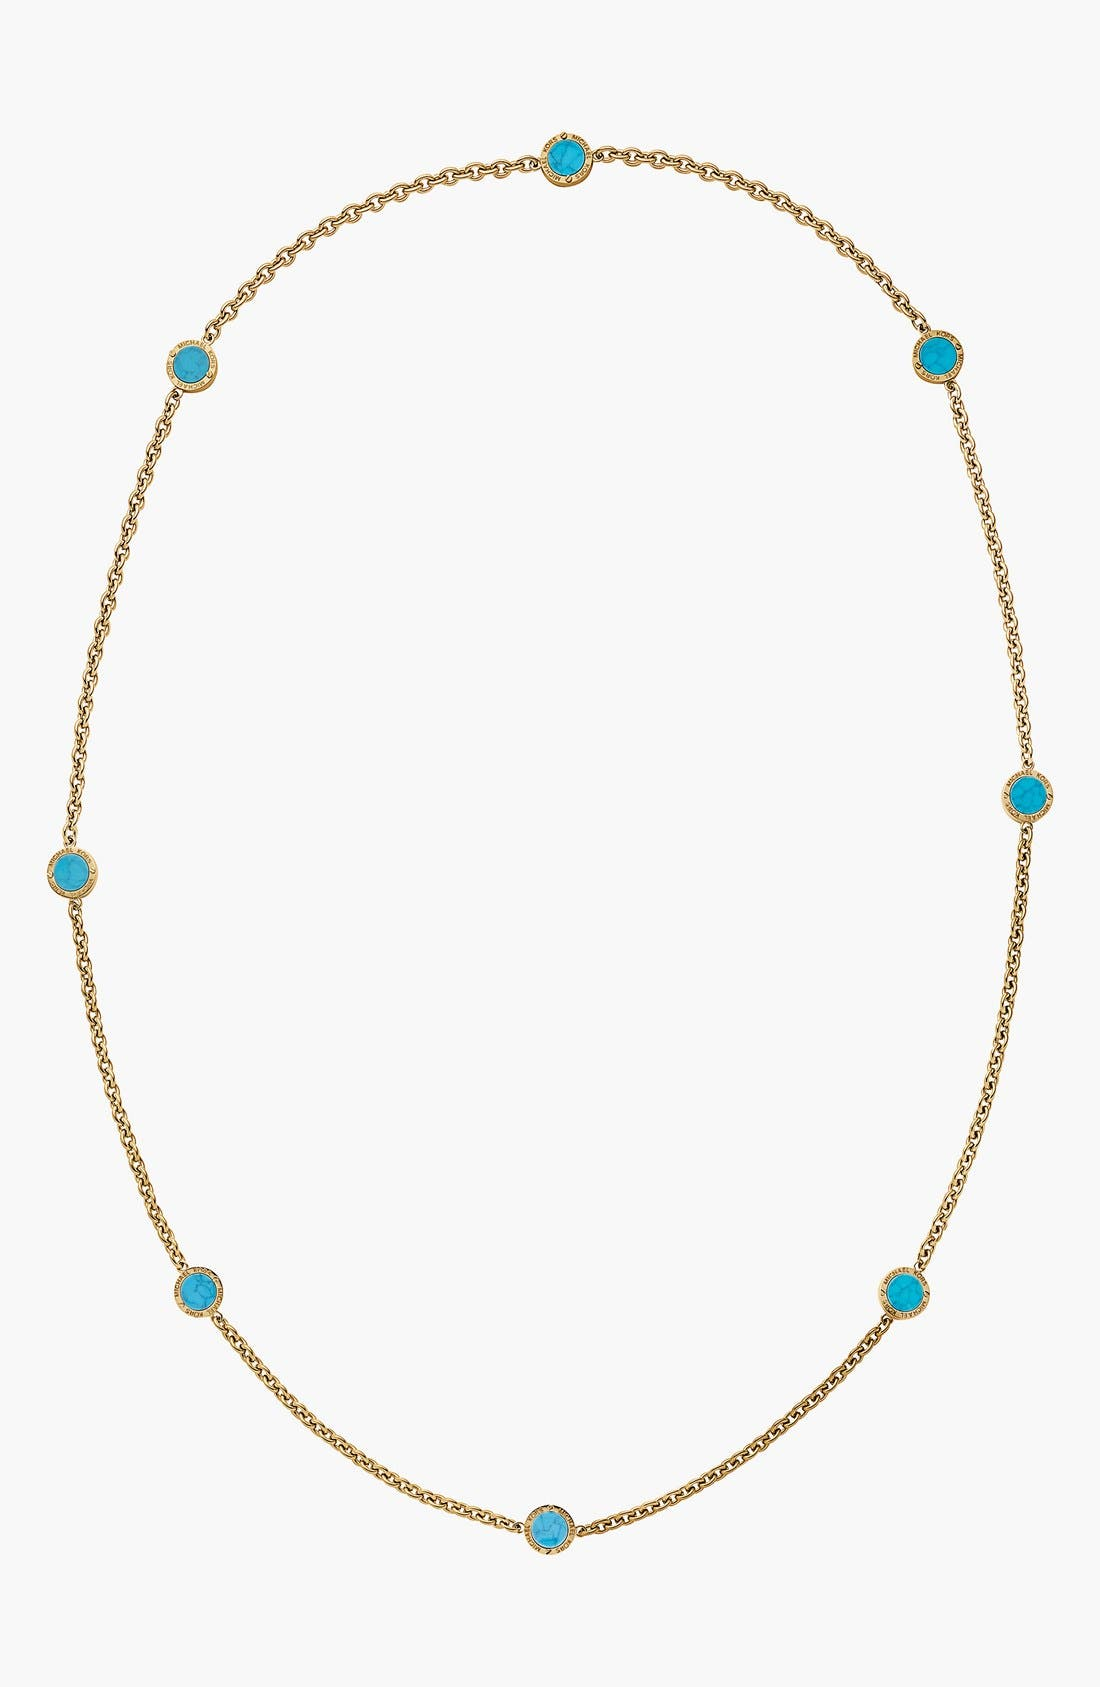 Alternate Image 1 Selected - Michael Kors 'Modern Mix' Long Station Necklace